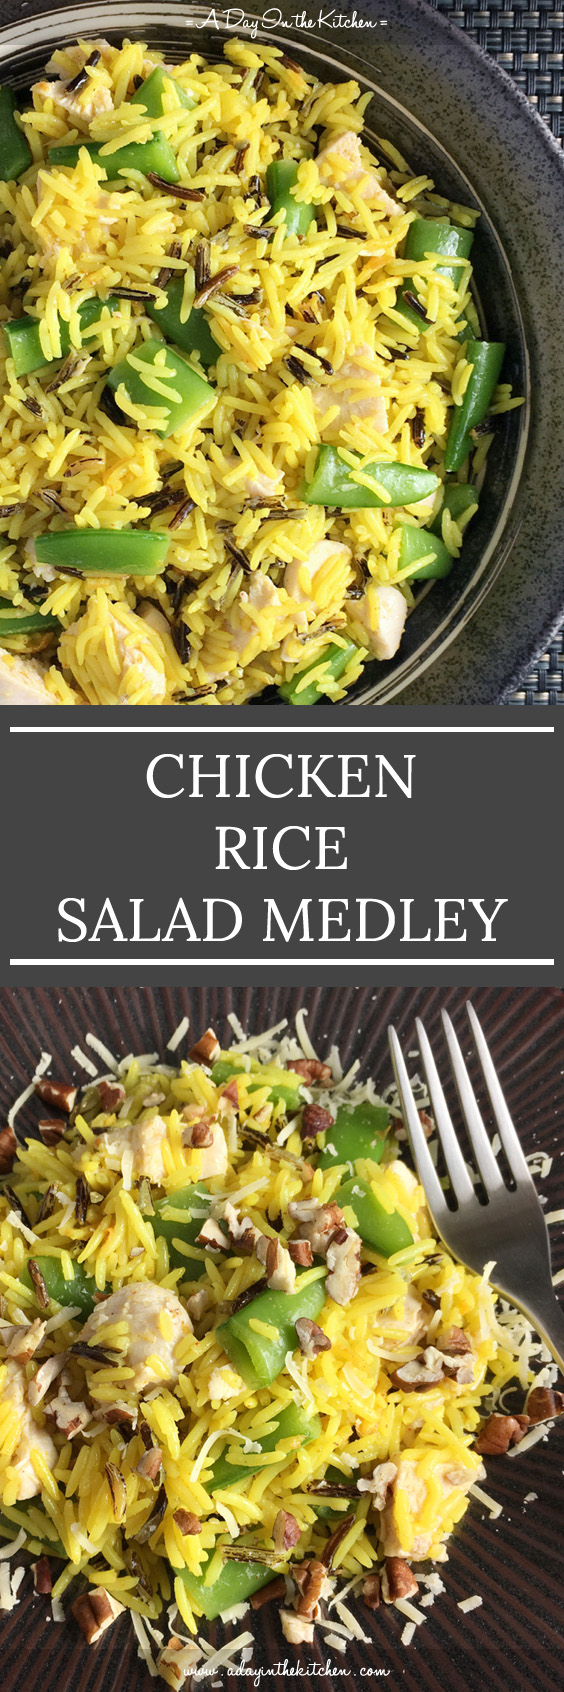 Perfect for a simple weeknight meal, this Chicken Rice Salad is hearty, tasty, healthy! #chickenricesalad #ricesalad #chicken #chickensalad #rice